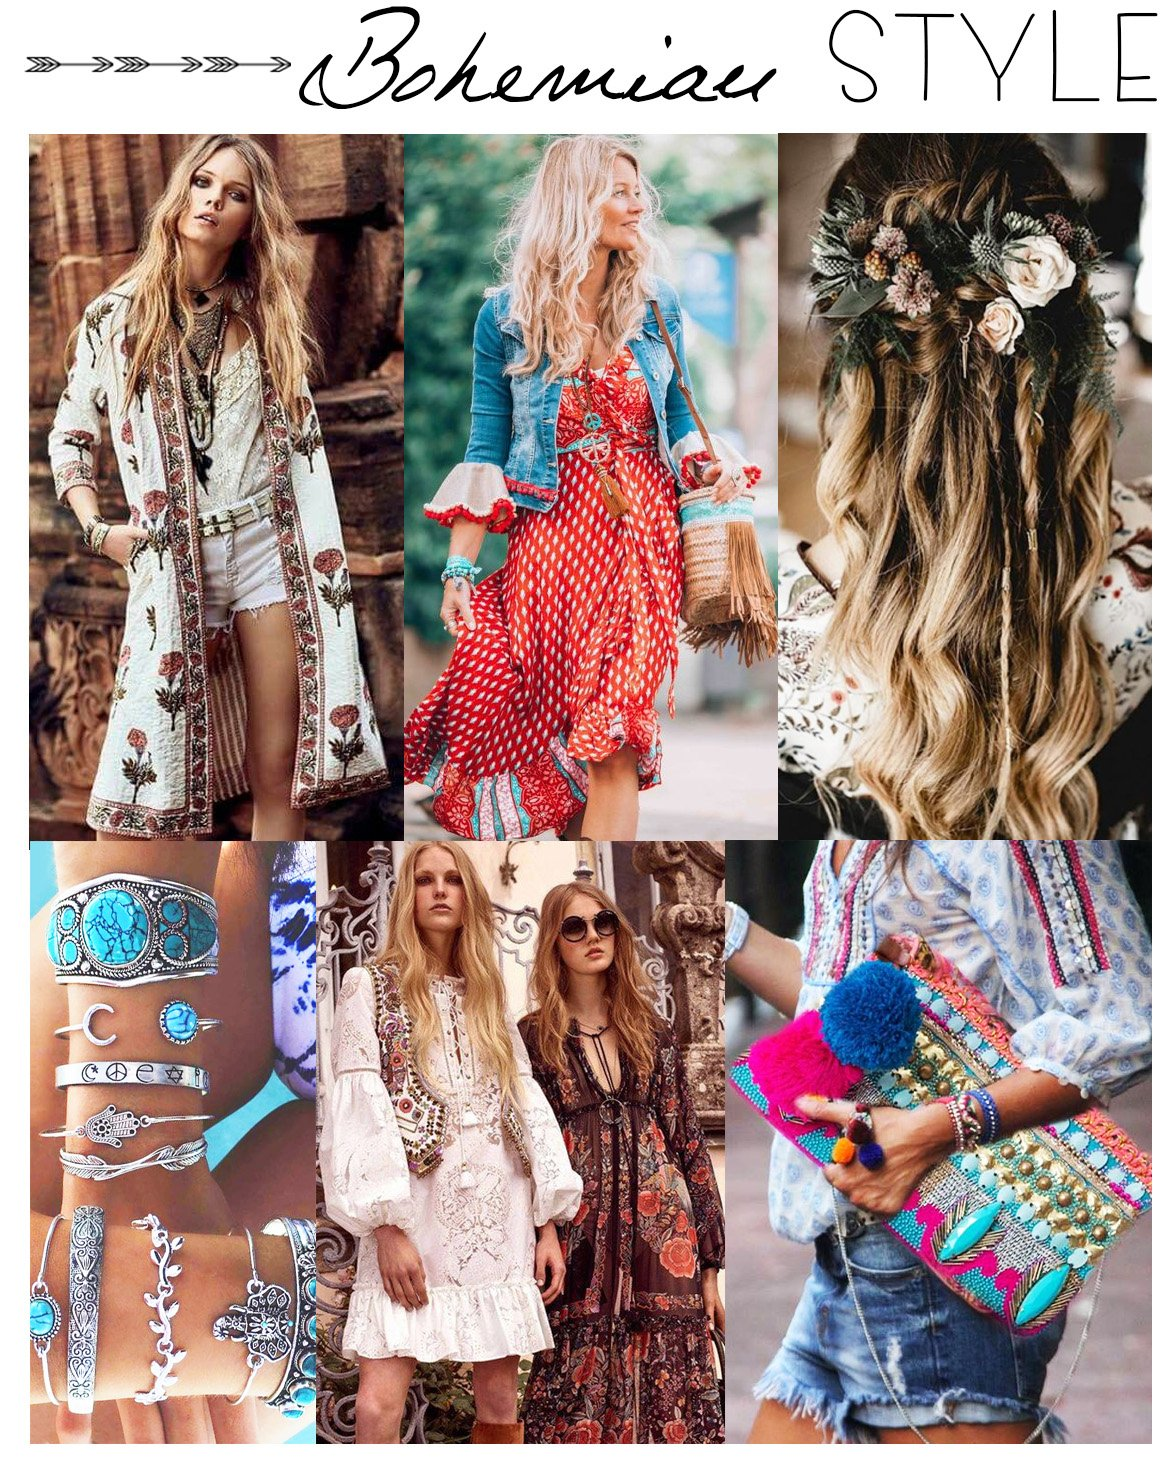 89d9b8a37b0 Bohemian Style: The Ultimate Guide and History | TPS